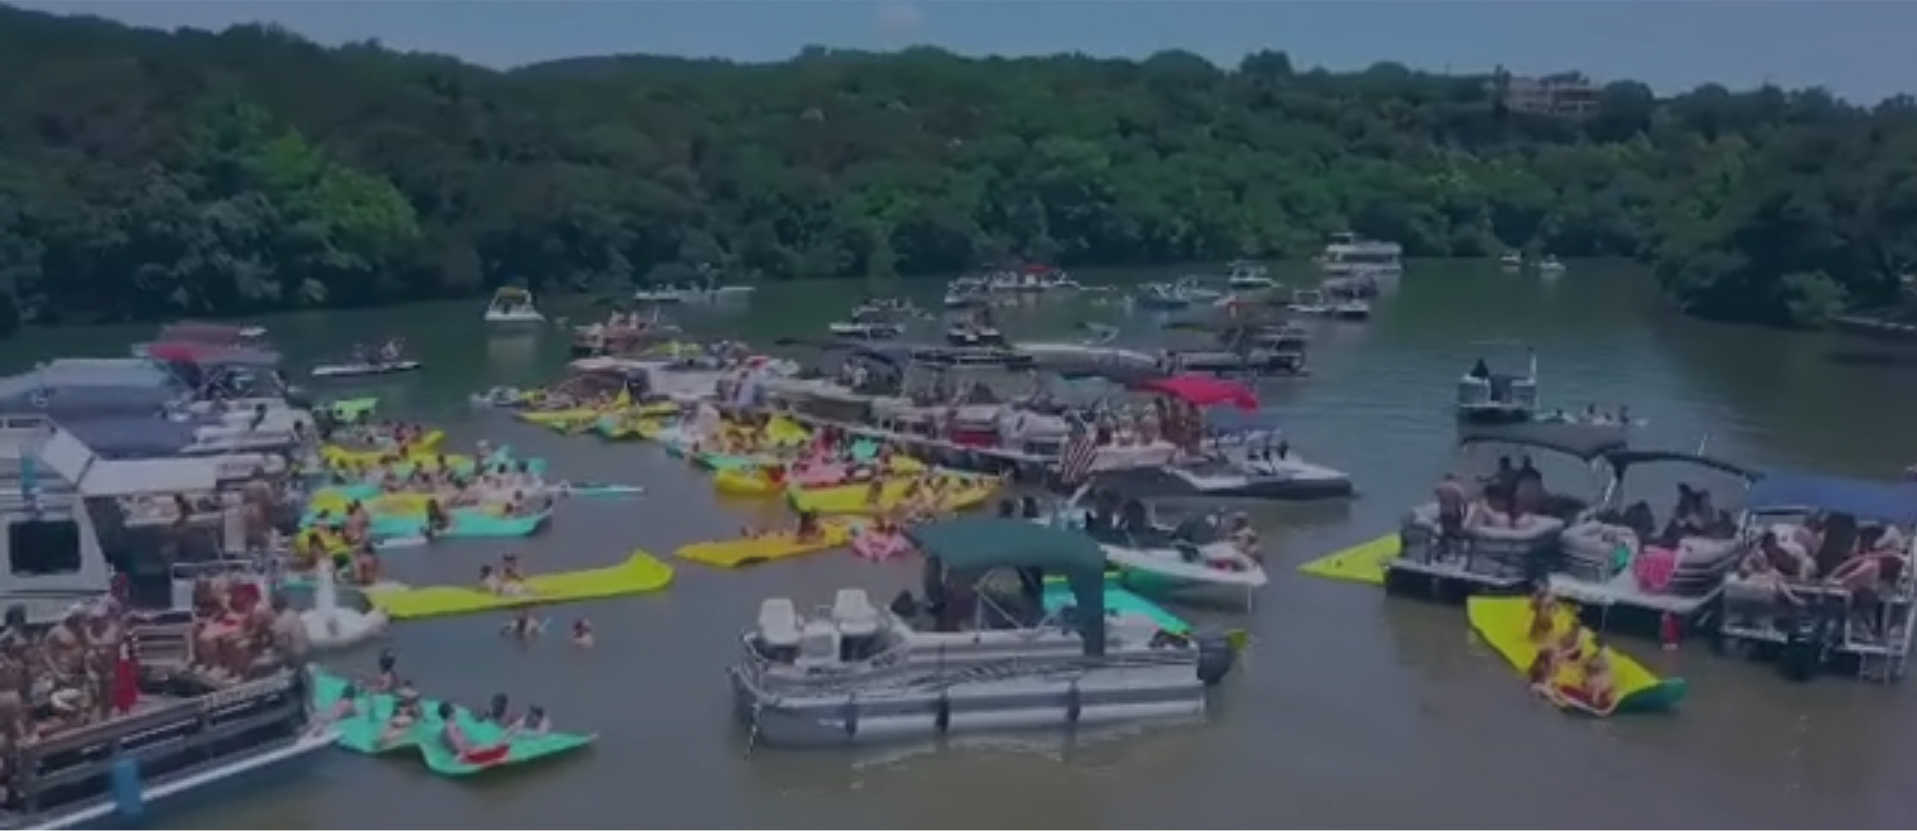 Party Boats Events